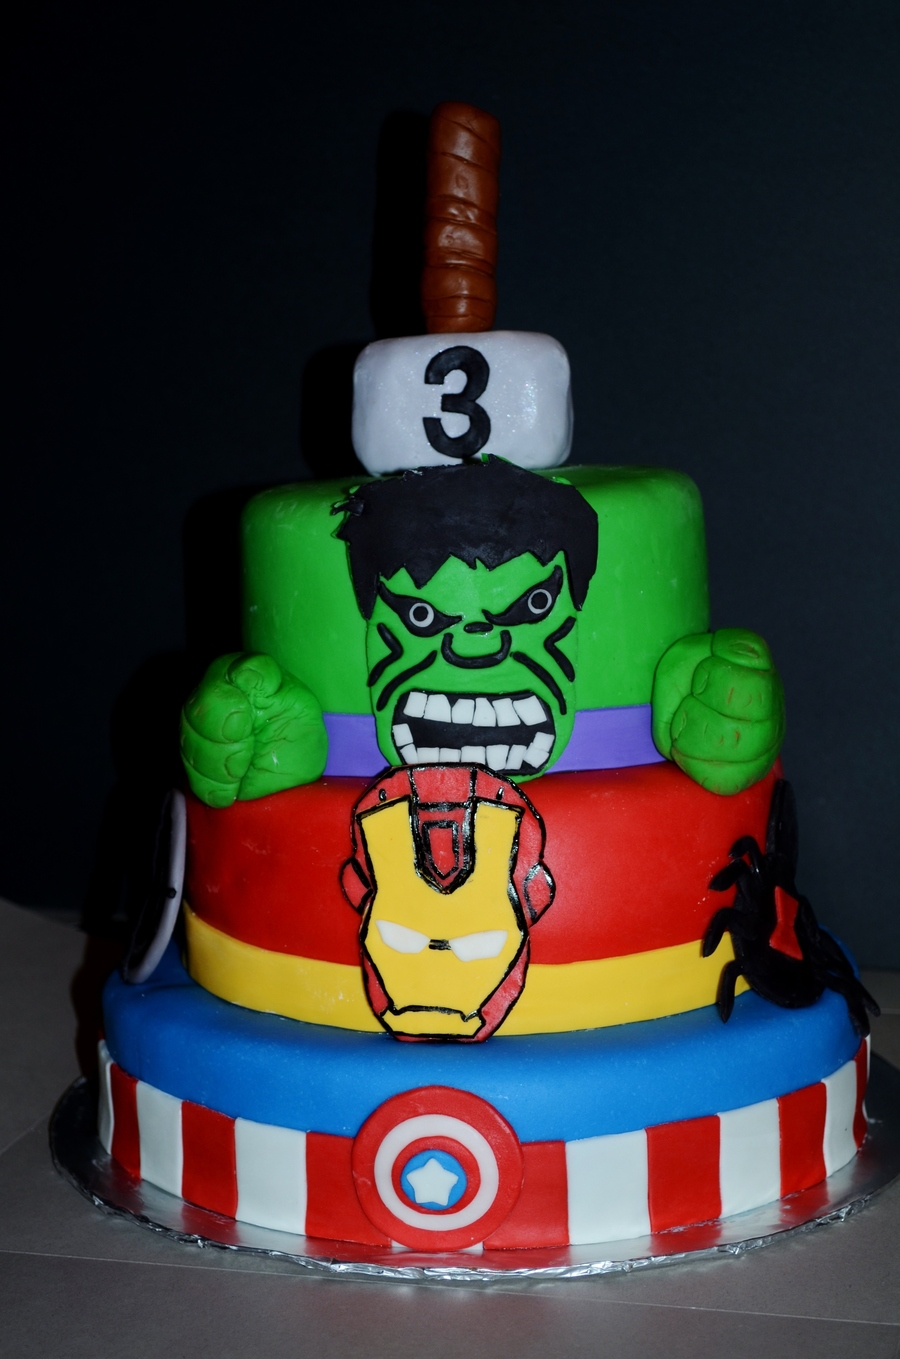 Avengers Birthday Cake Covered In Mmf Faces Inspired By